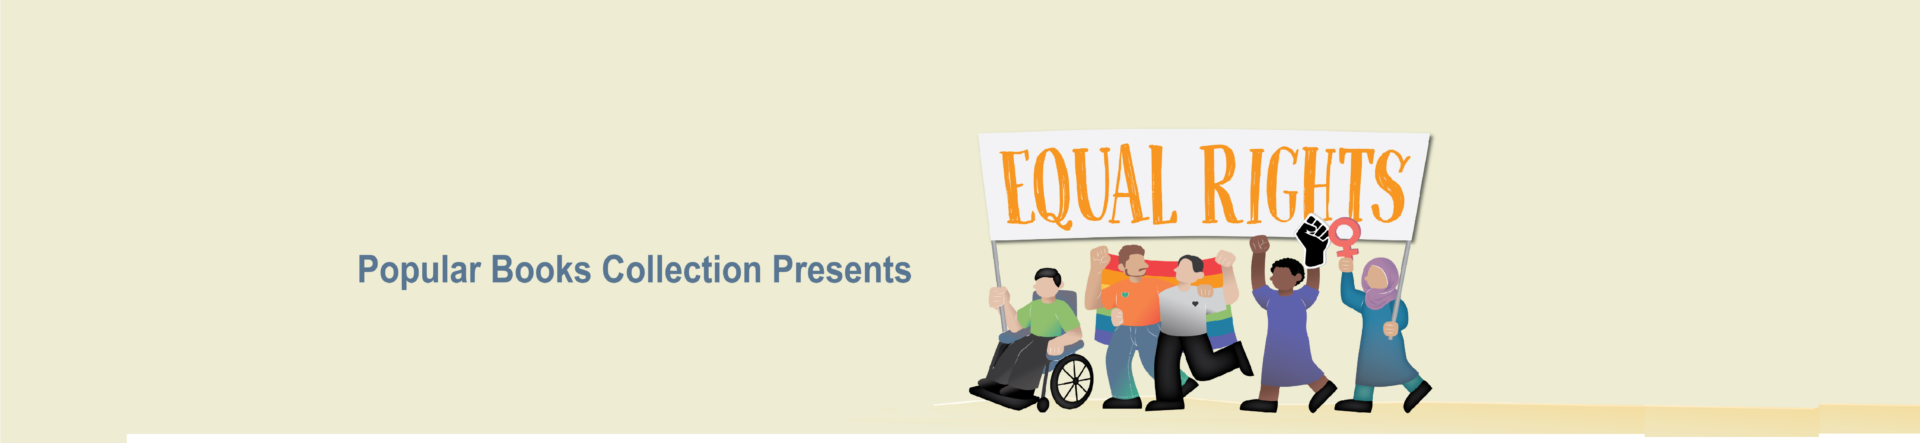 Popular Books Collection - Equal Rights